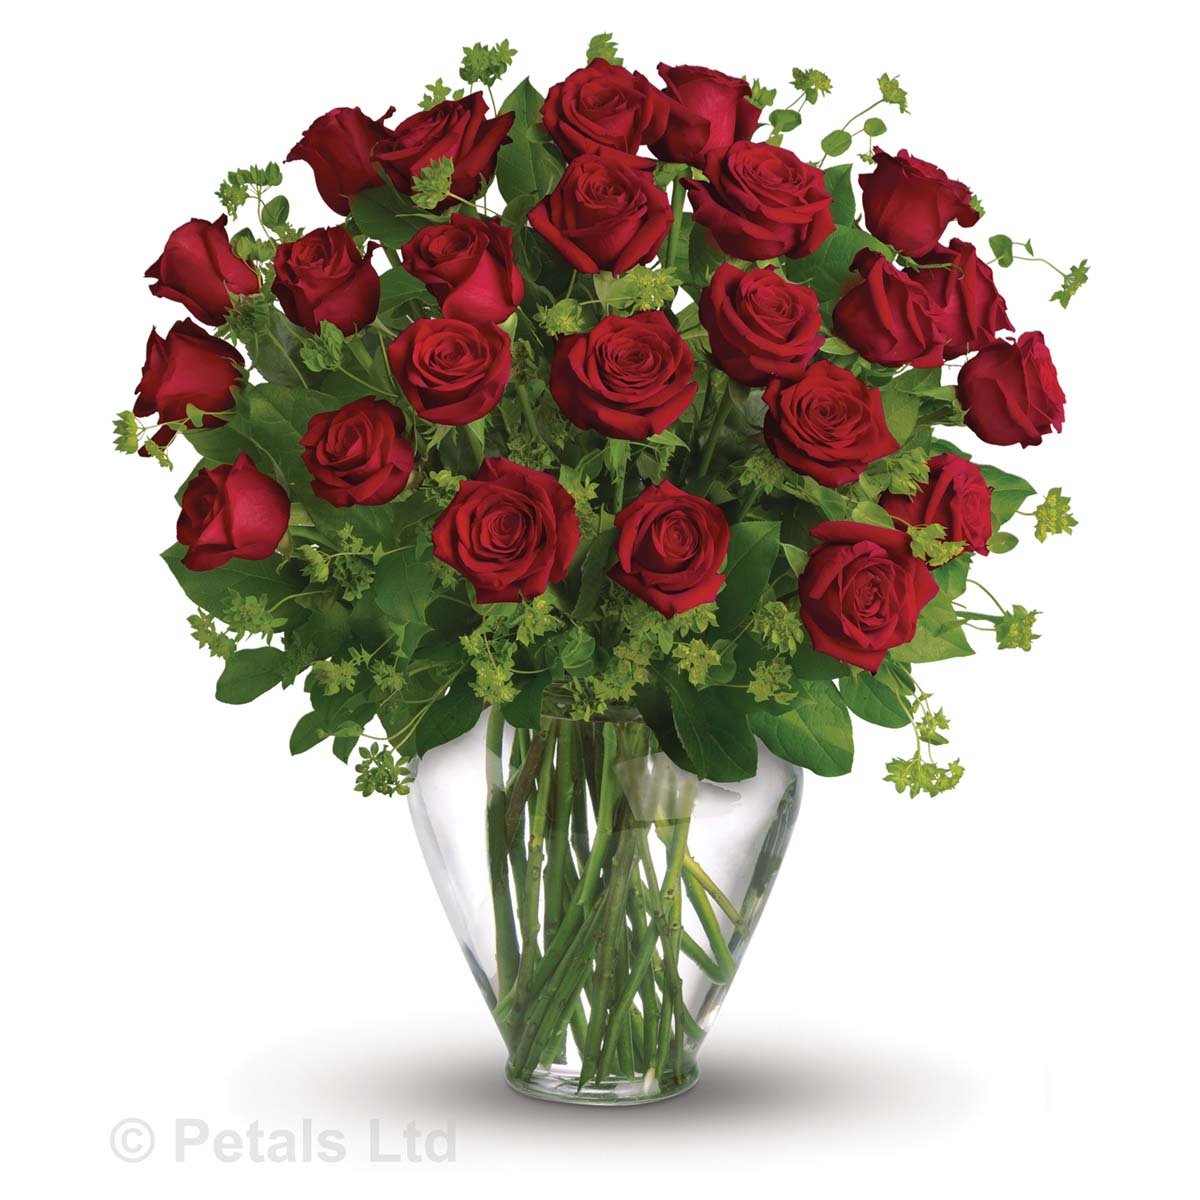 My Perfect Love 2 Dozen Red Roses